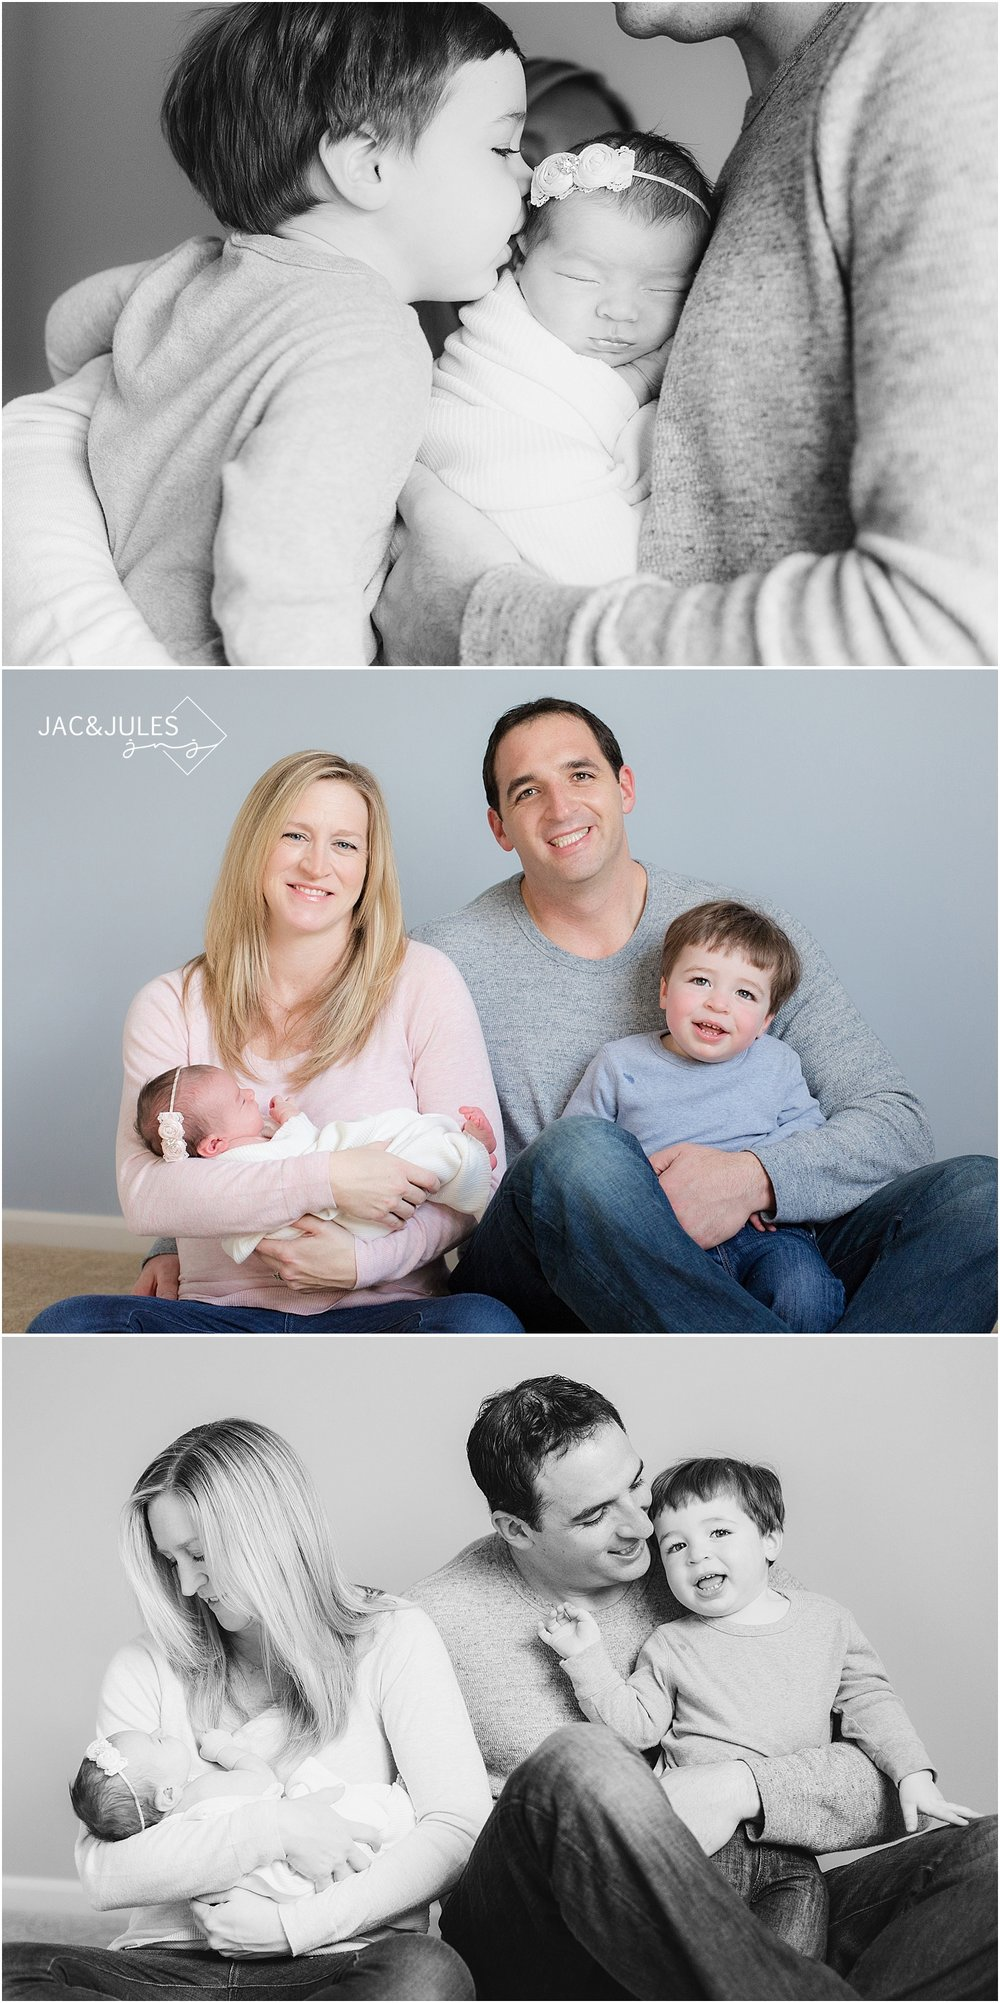 jacnjules photographs newborn baby girl in her home in Point Pleasant NJ